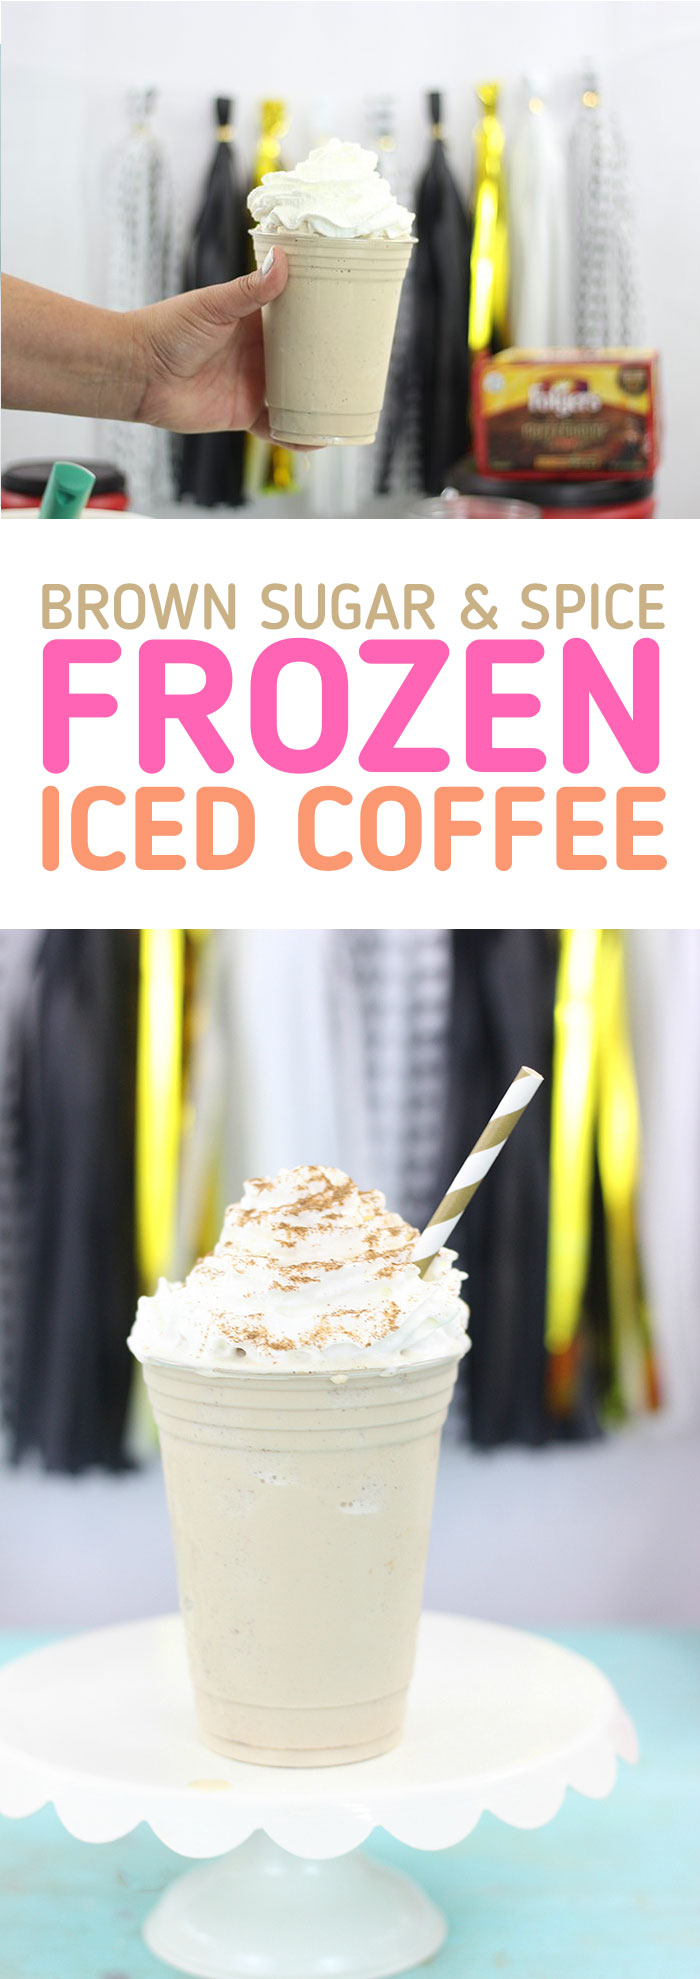 Frozen Iced Coffee with Brown Sugar and Spice. SO good for a refreshing treat.